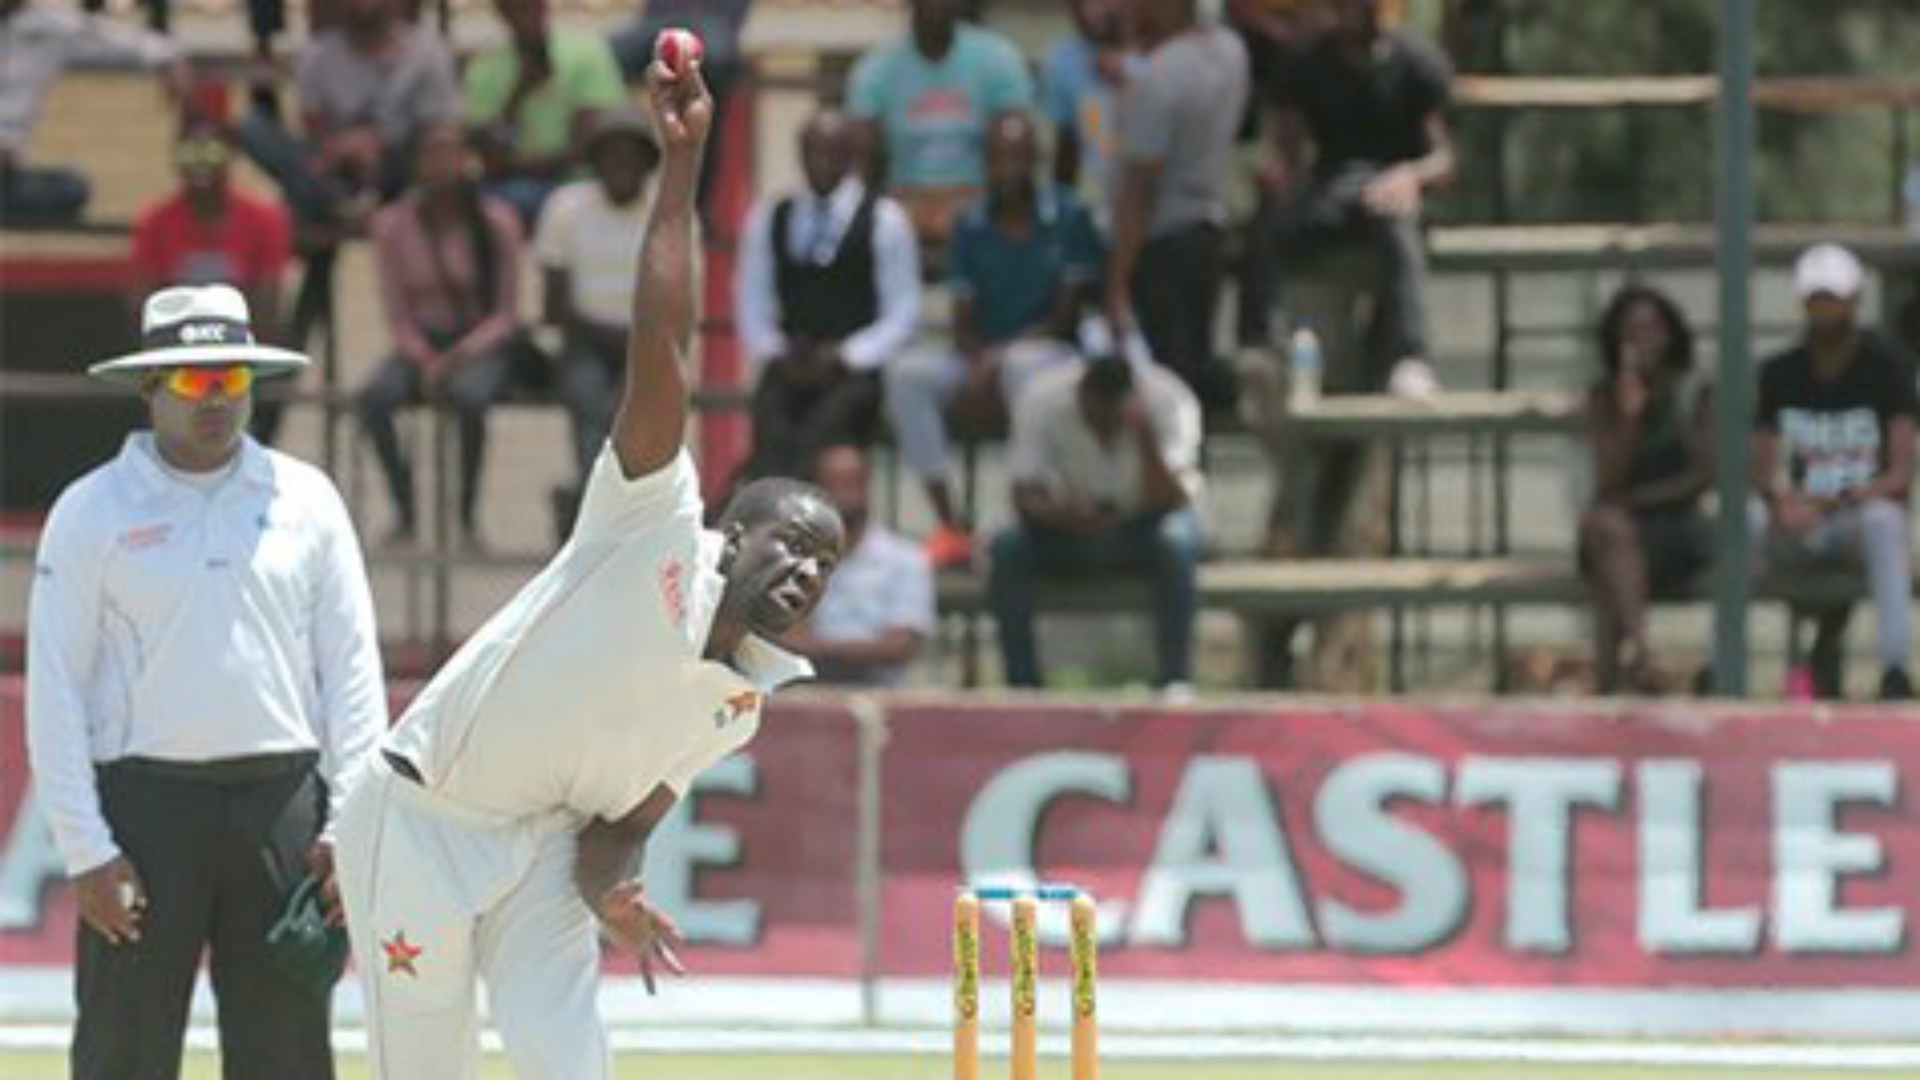 Sri Lanka are 284 runs behind Zimbabwe after two days of the second Test match between the teams in Harare.